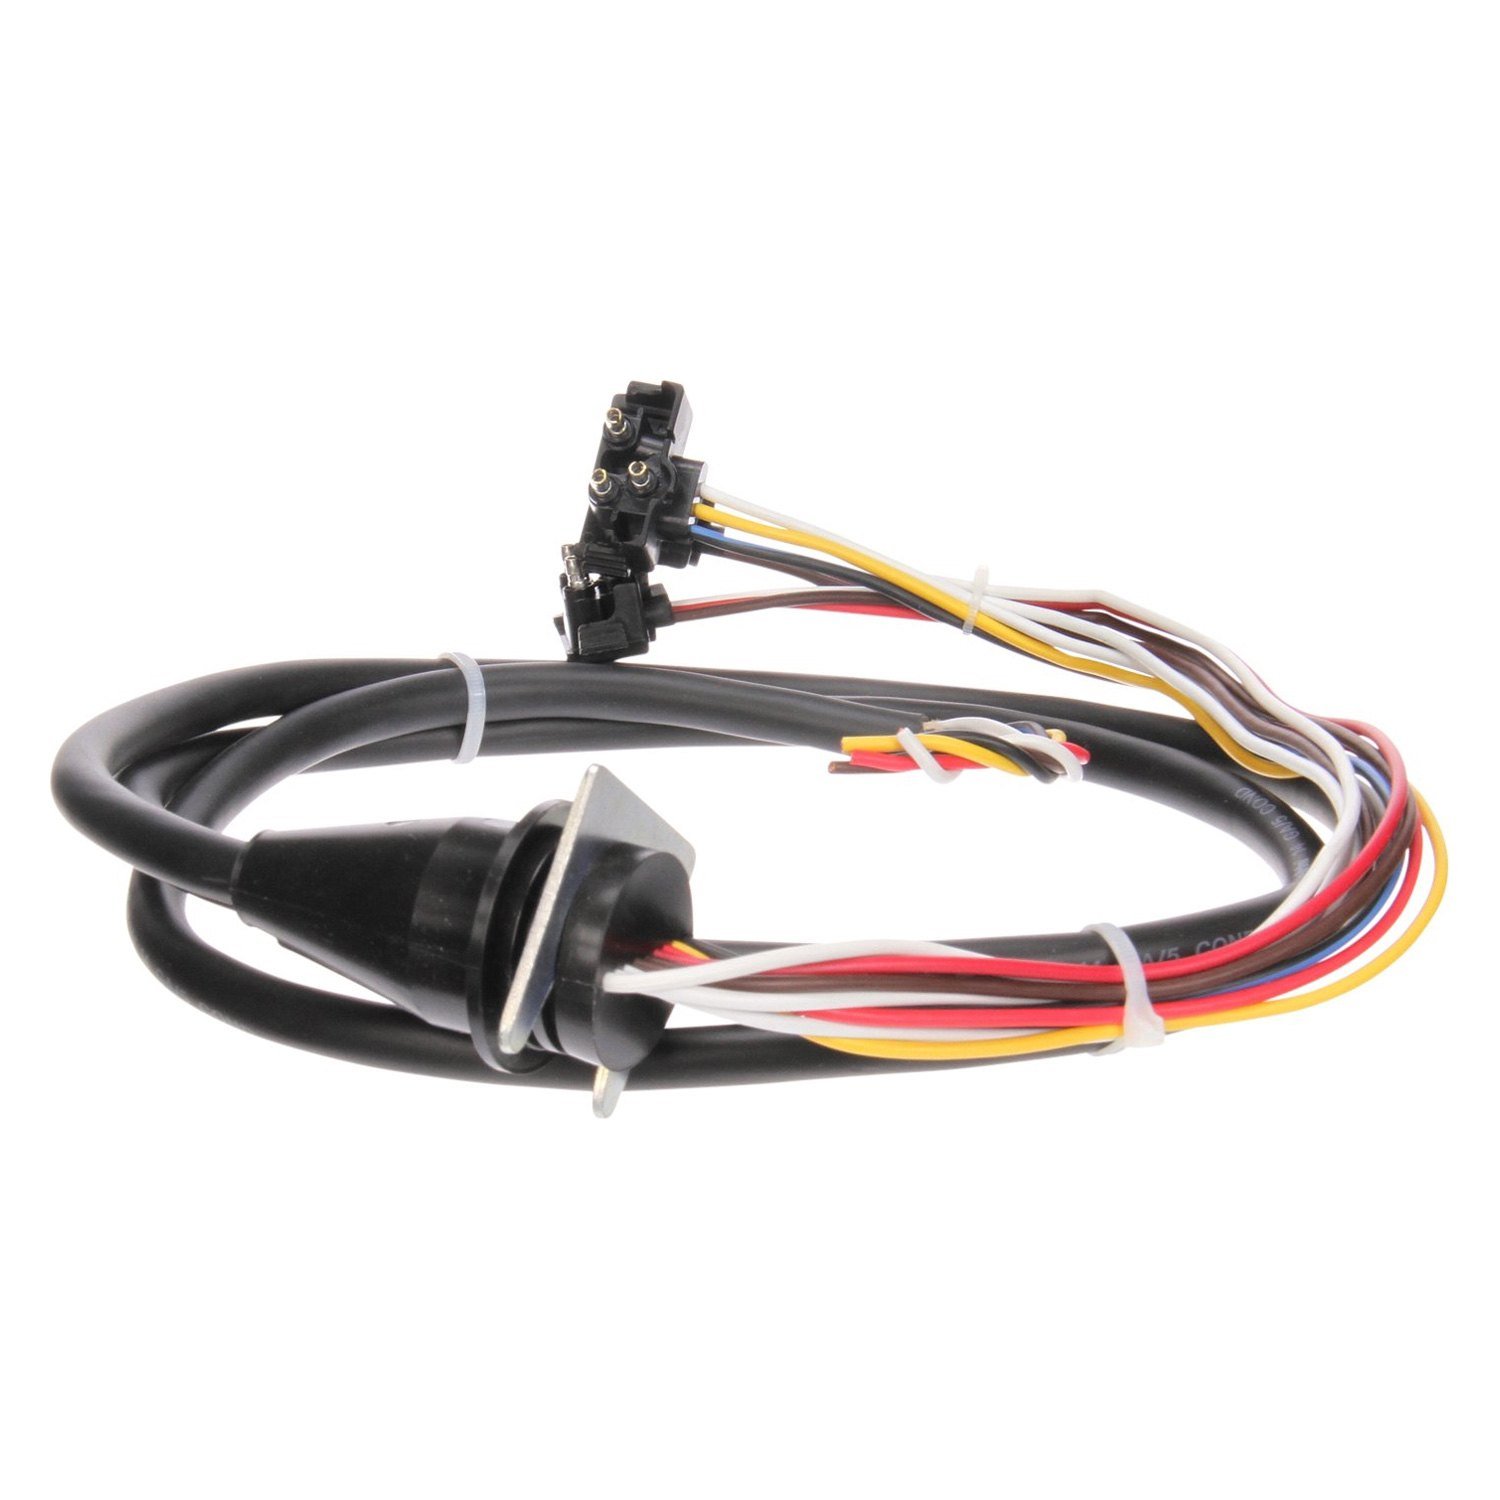 hight resolution of  and back up wiring harness with stop turn tail breakouttruck lite 50 series 72 passenger side 3 plug stop turn tail and back up wiring harness with